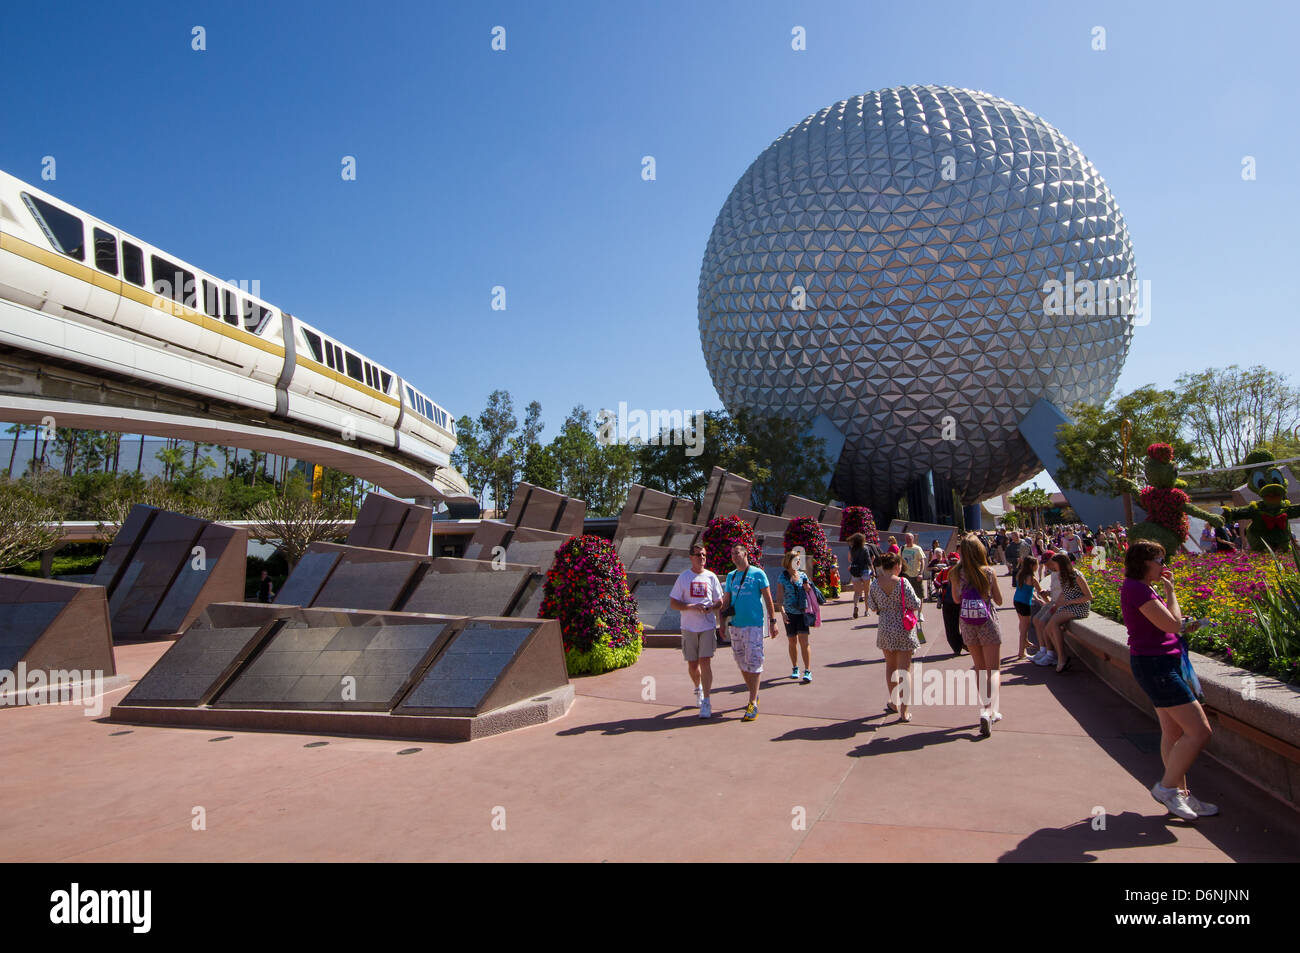 The Entrance to Epcot in Disney World resort, Florida, showing the Monorail and the iconic Spaceship Earth structure - Stock Image